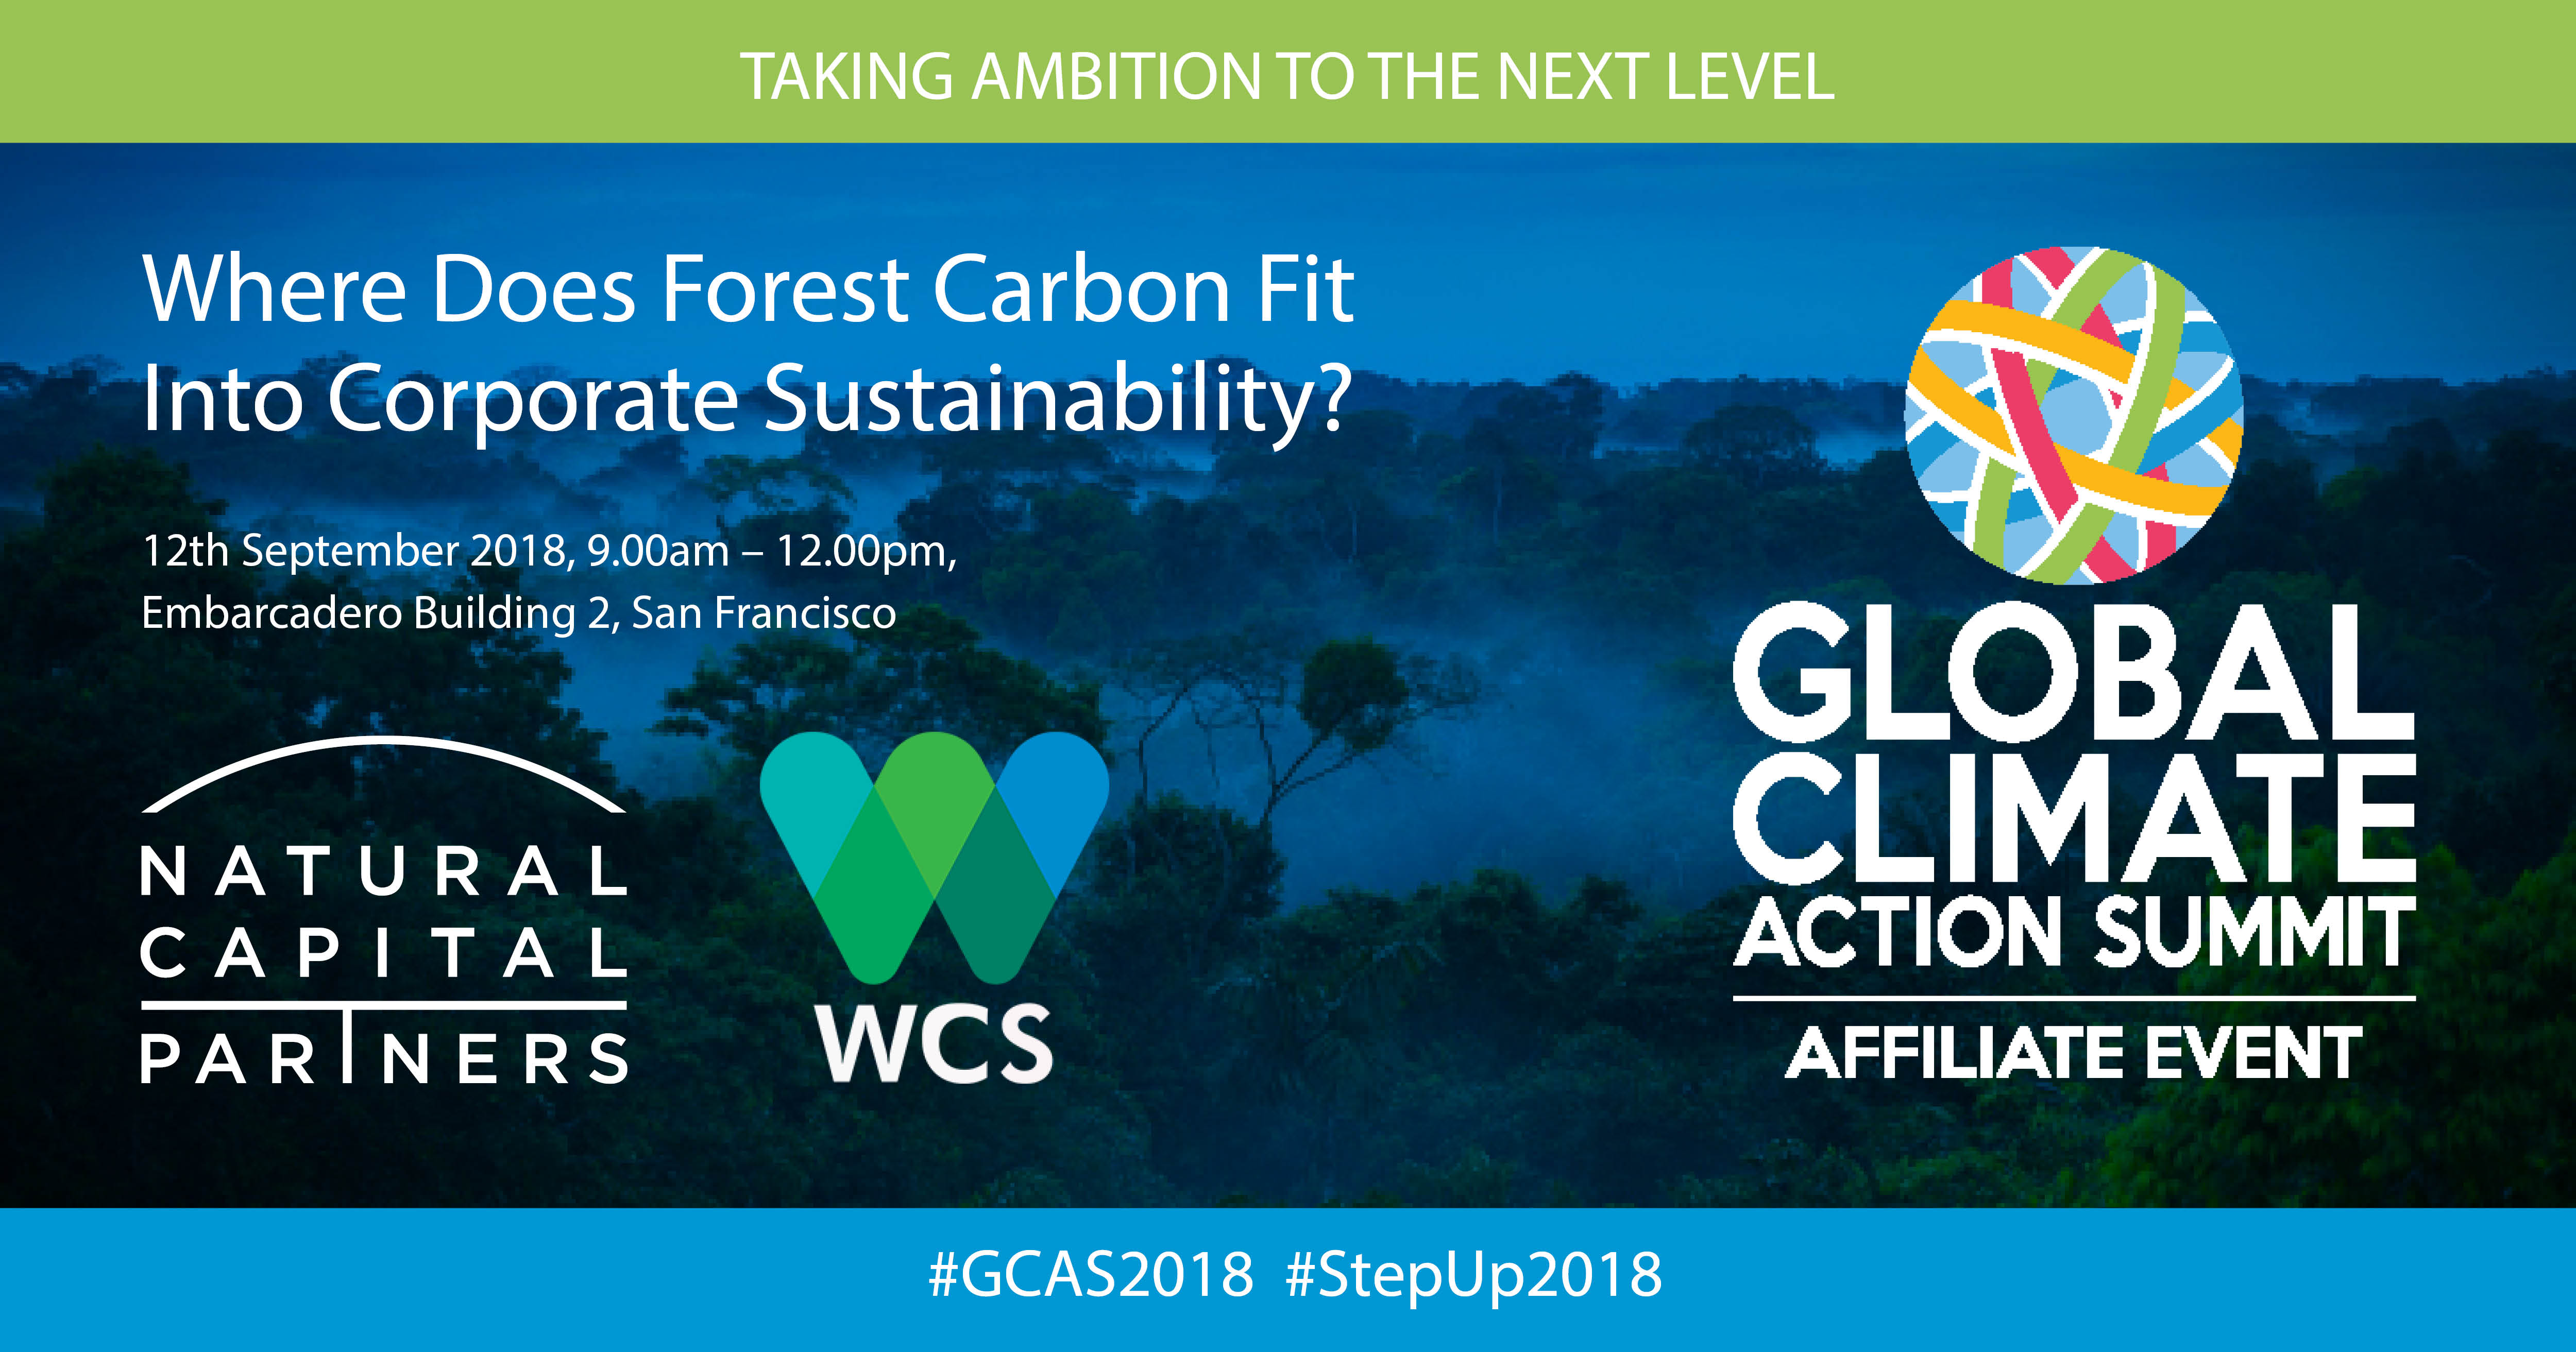 Where Does Forest Carbon Fit Into Corporate Sustainability?